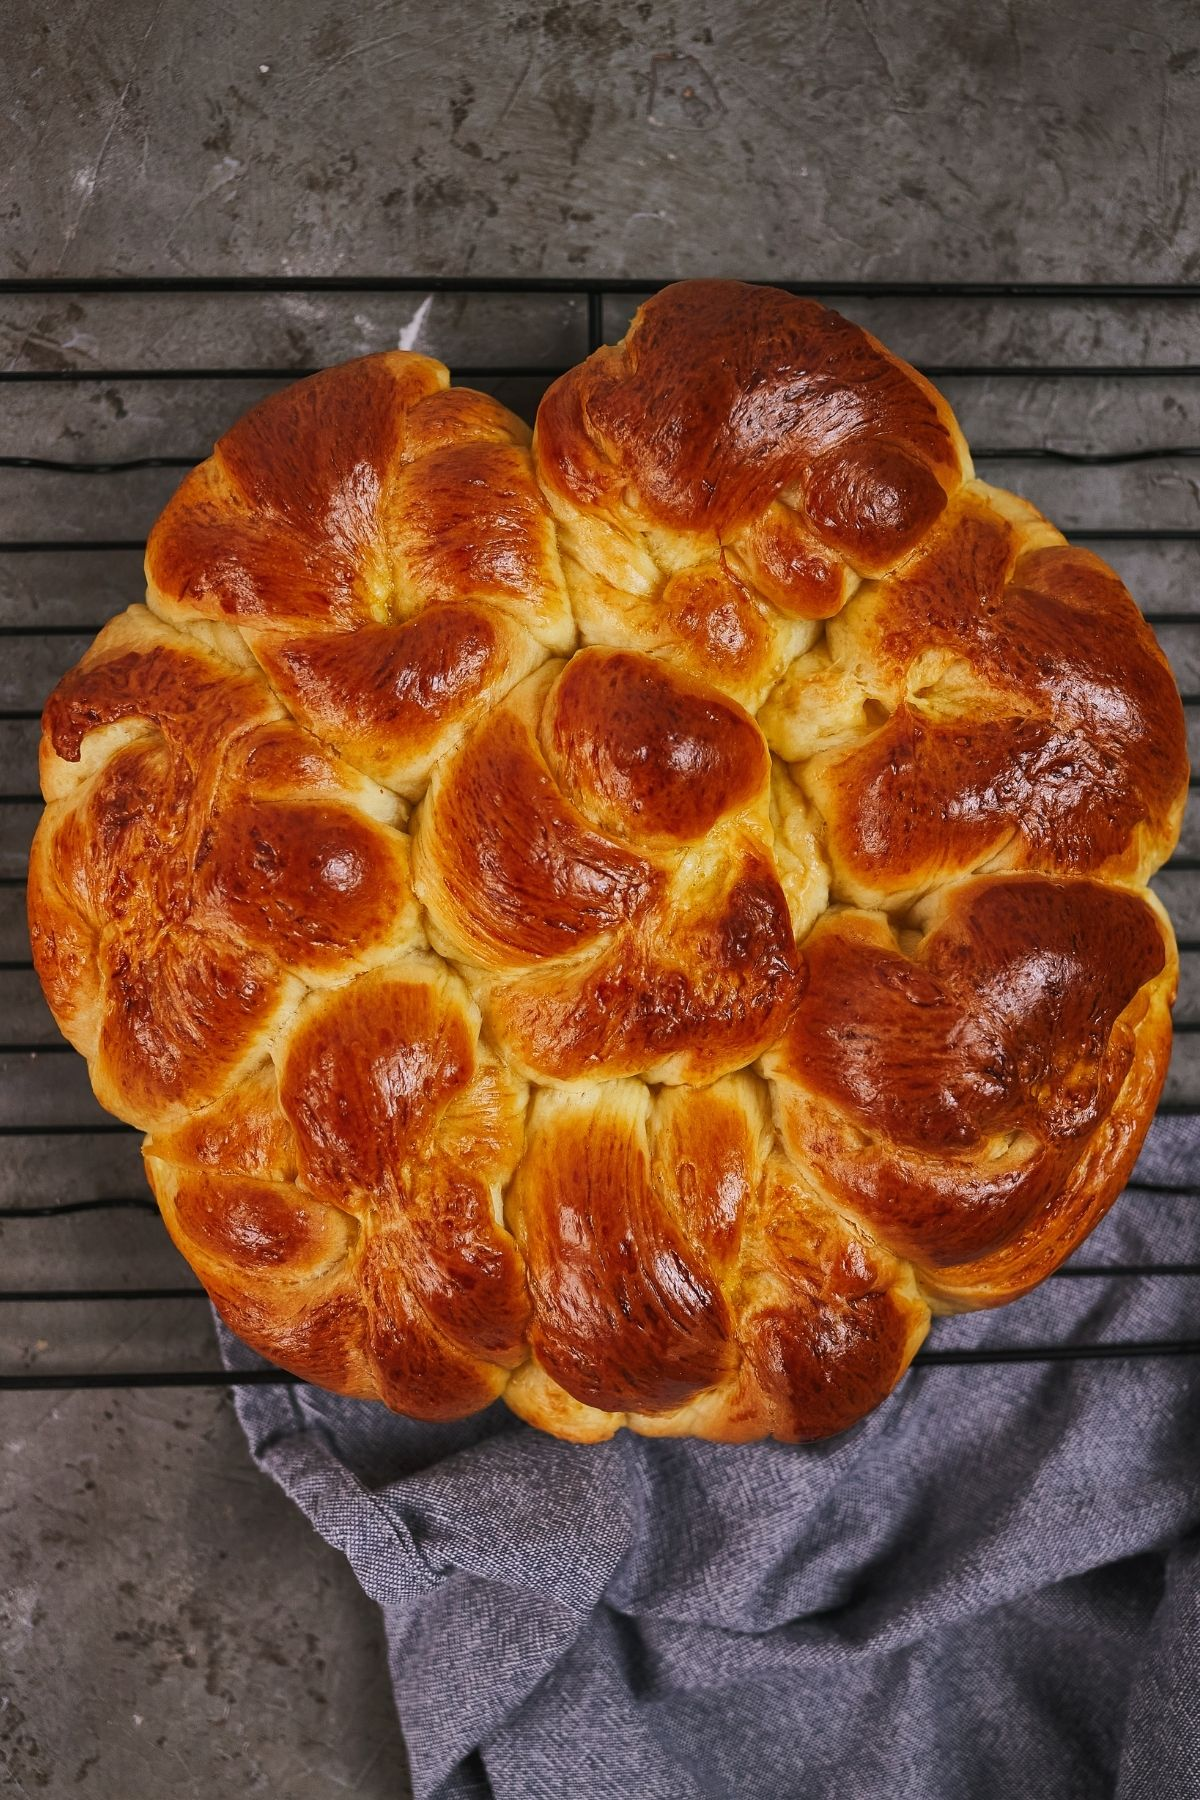 Pan of browned milk bread knot rolls on top of black wire rack over gray table